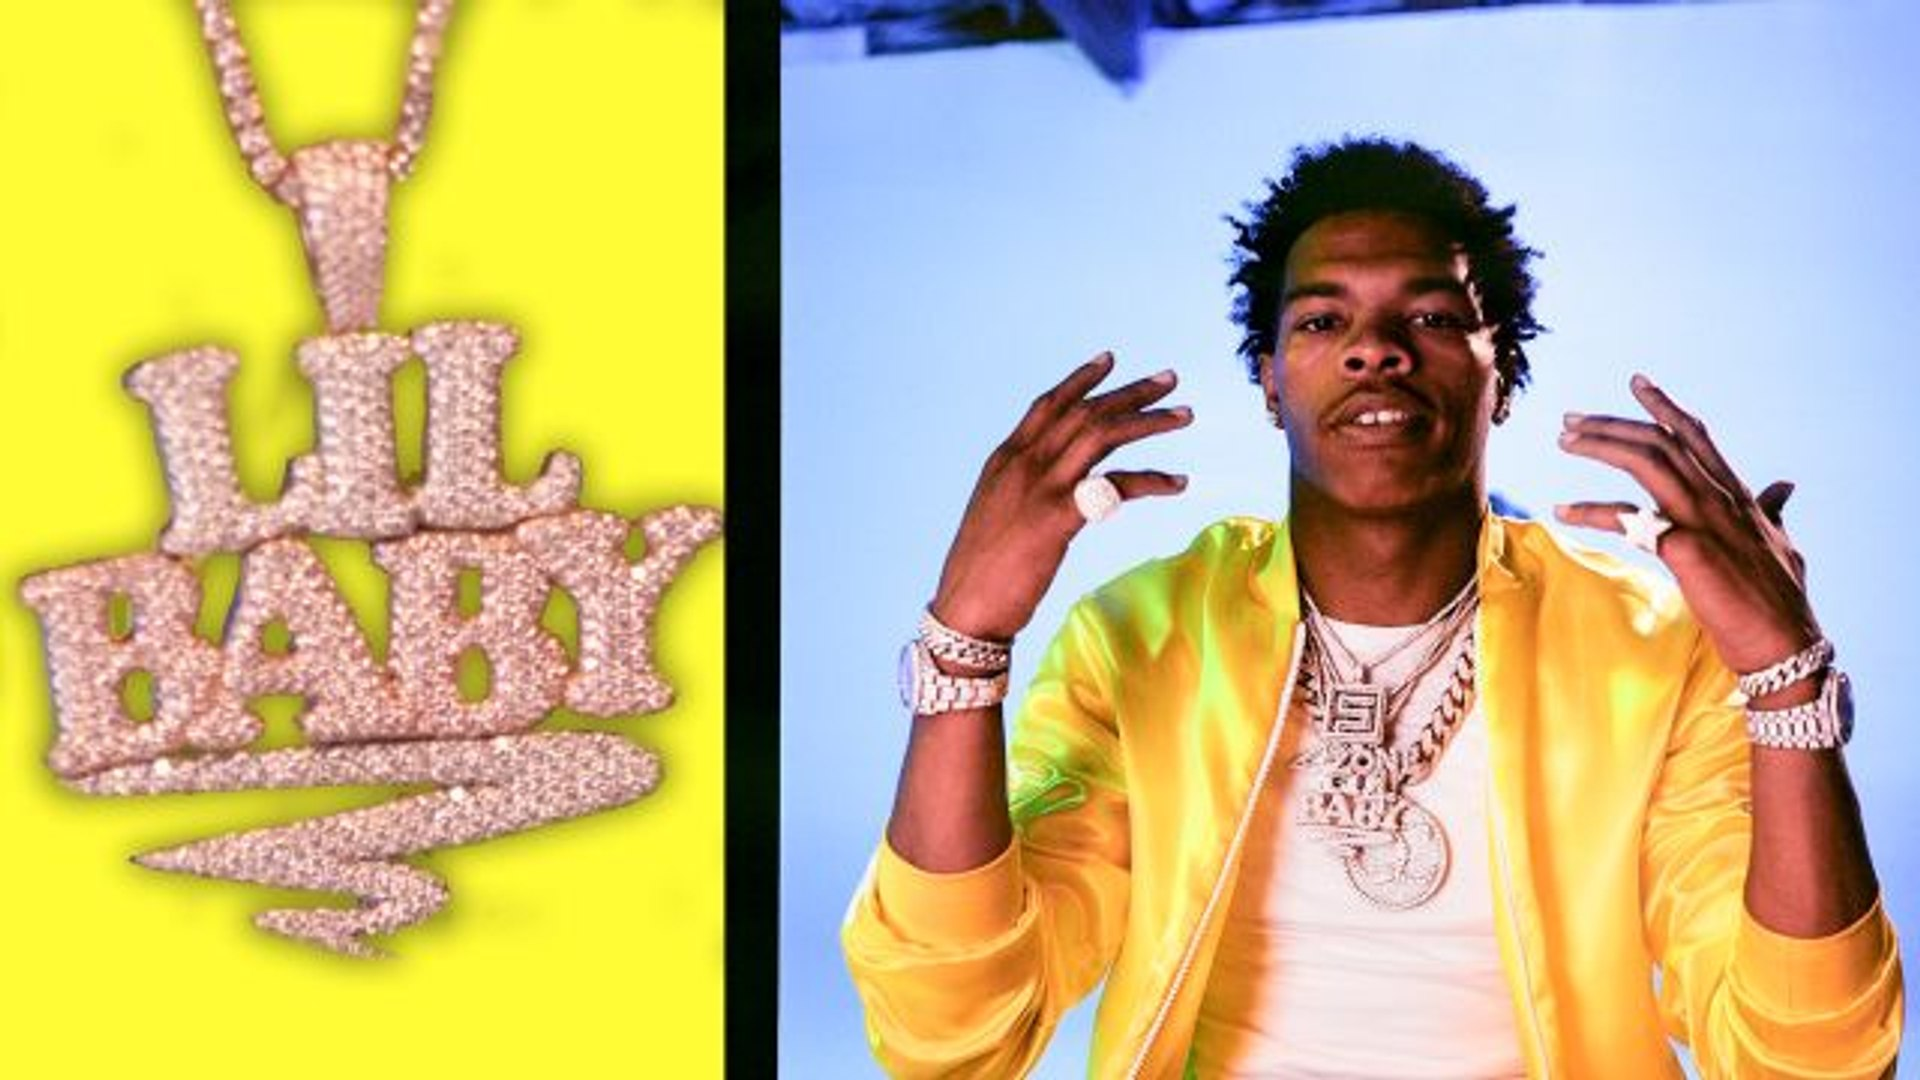 Your New Favorite Rapper, Lil Baby, Shows Off His Favorite Jewelry